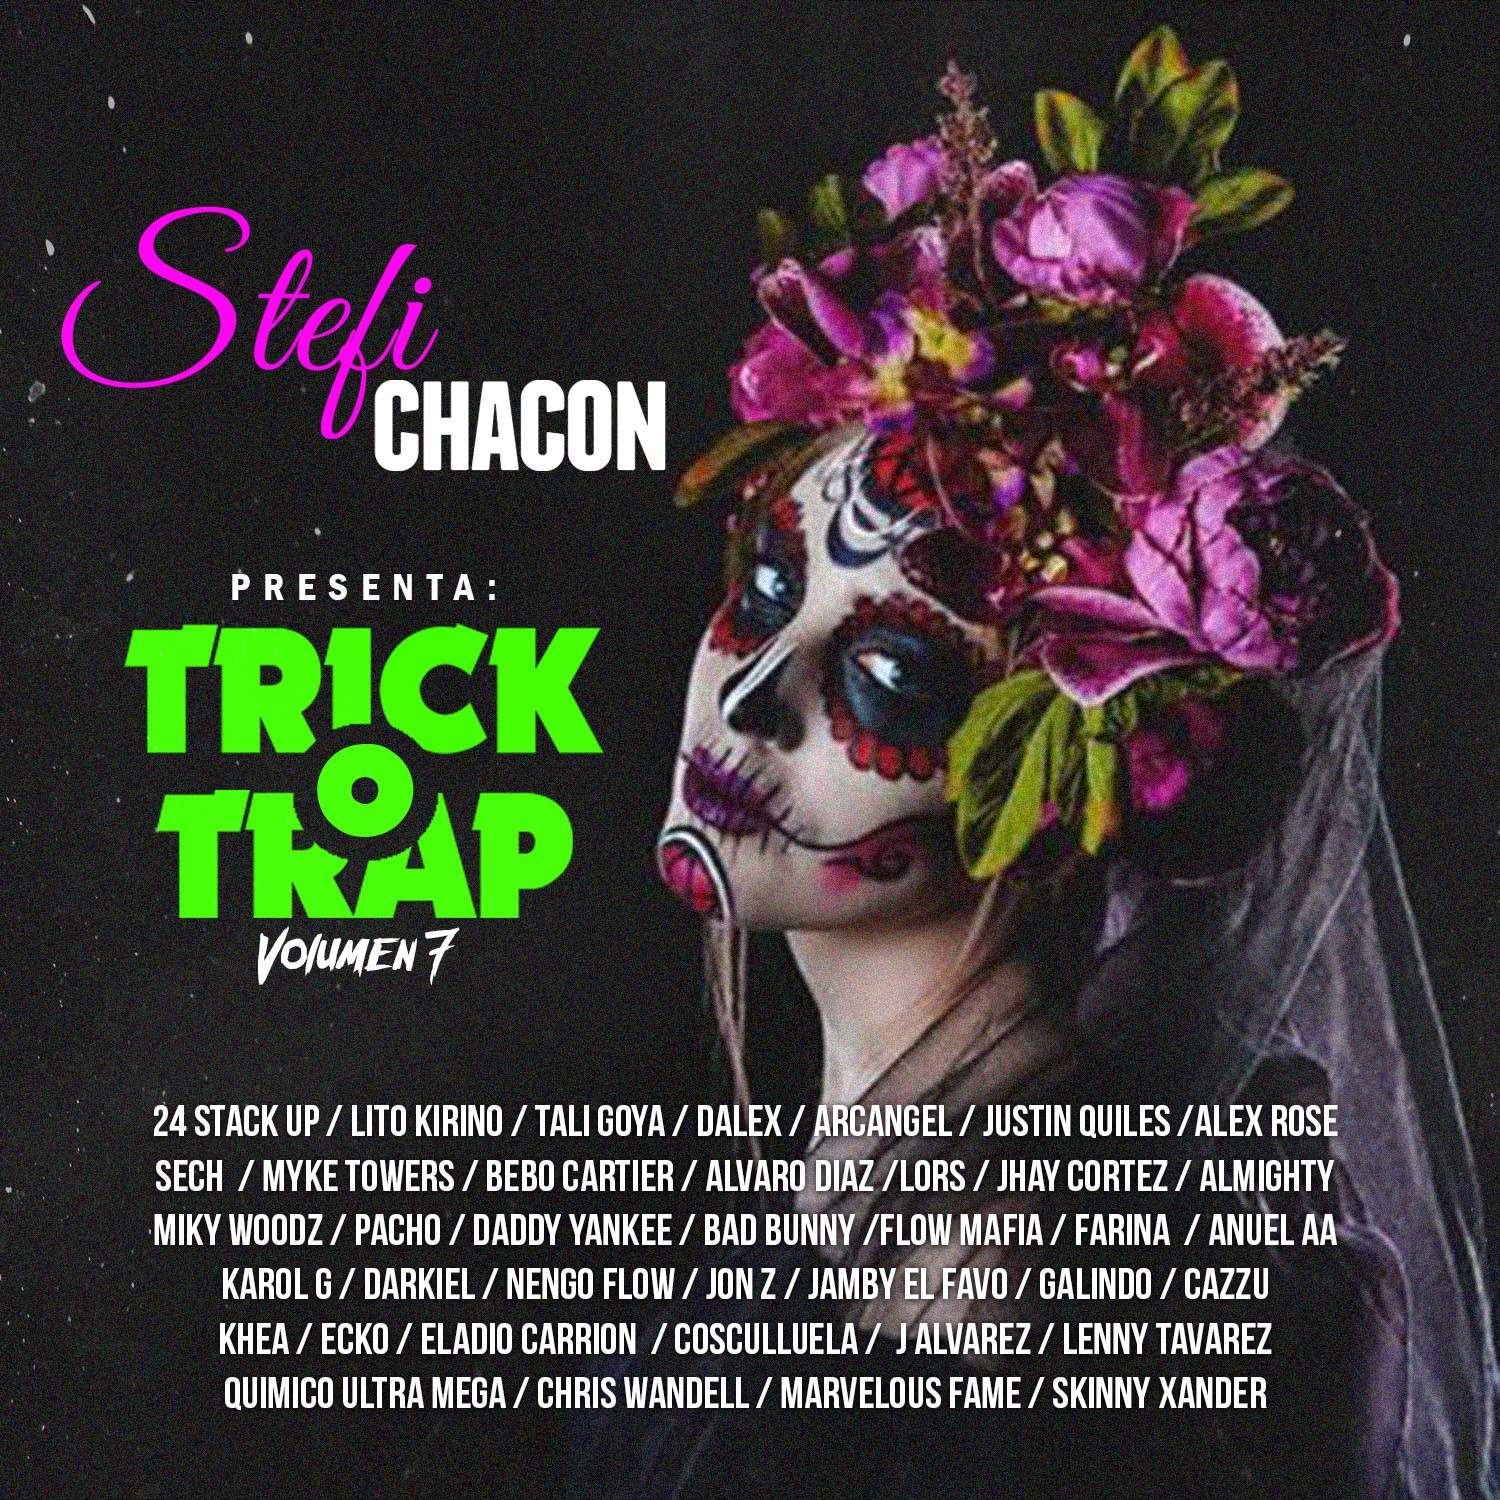 Arcangel Alex Rose Daddy Yankee Bad Bunny Y Otros Trick o Trap Vol. 7 - Arcangel, Alex Rose, Daddy Yankee, Bad Bunny Y Otros - Trick o Trap (Vol. 7)